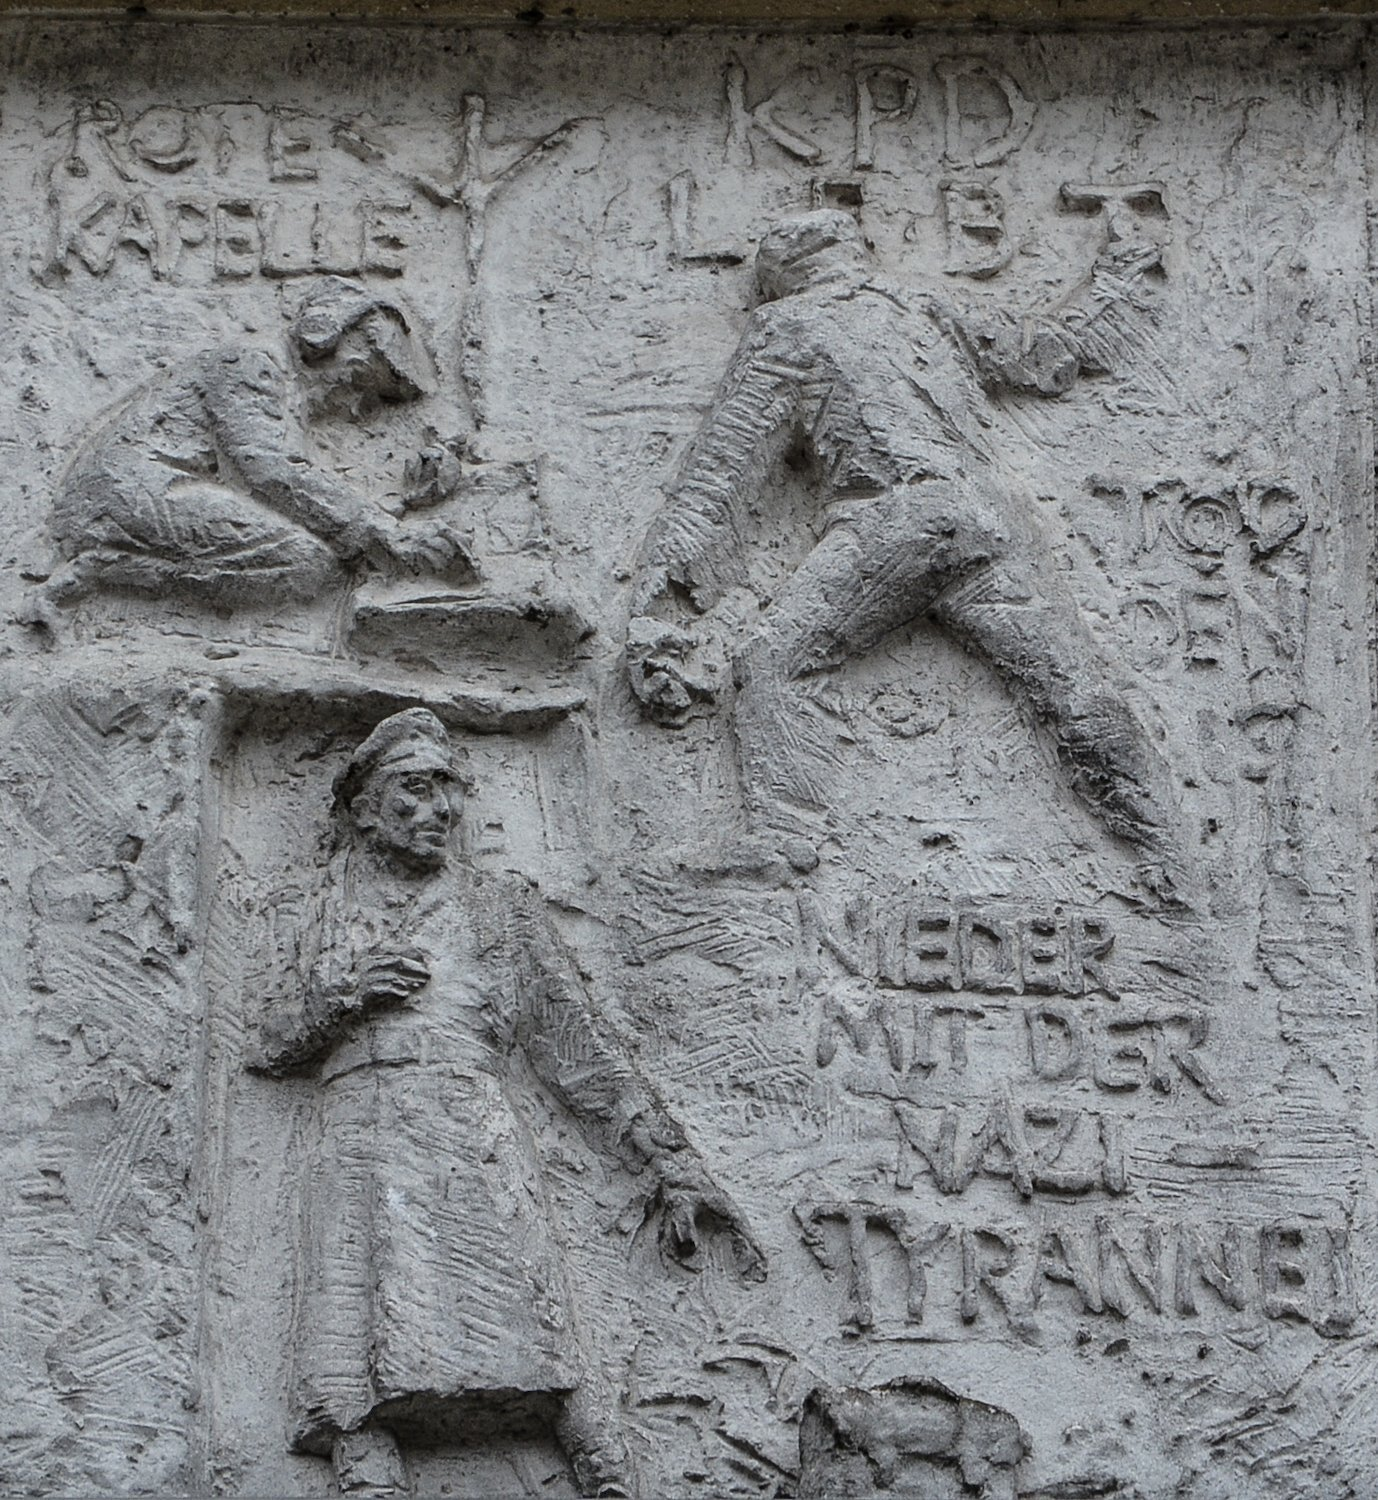 nieder mit den nazis fries der sozialistischen Geschichte Berlins Gerhard Thieme socialist history of berlin relief frieze berlin germany socialsim communism east berlin east germany ddr